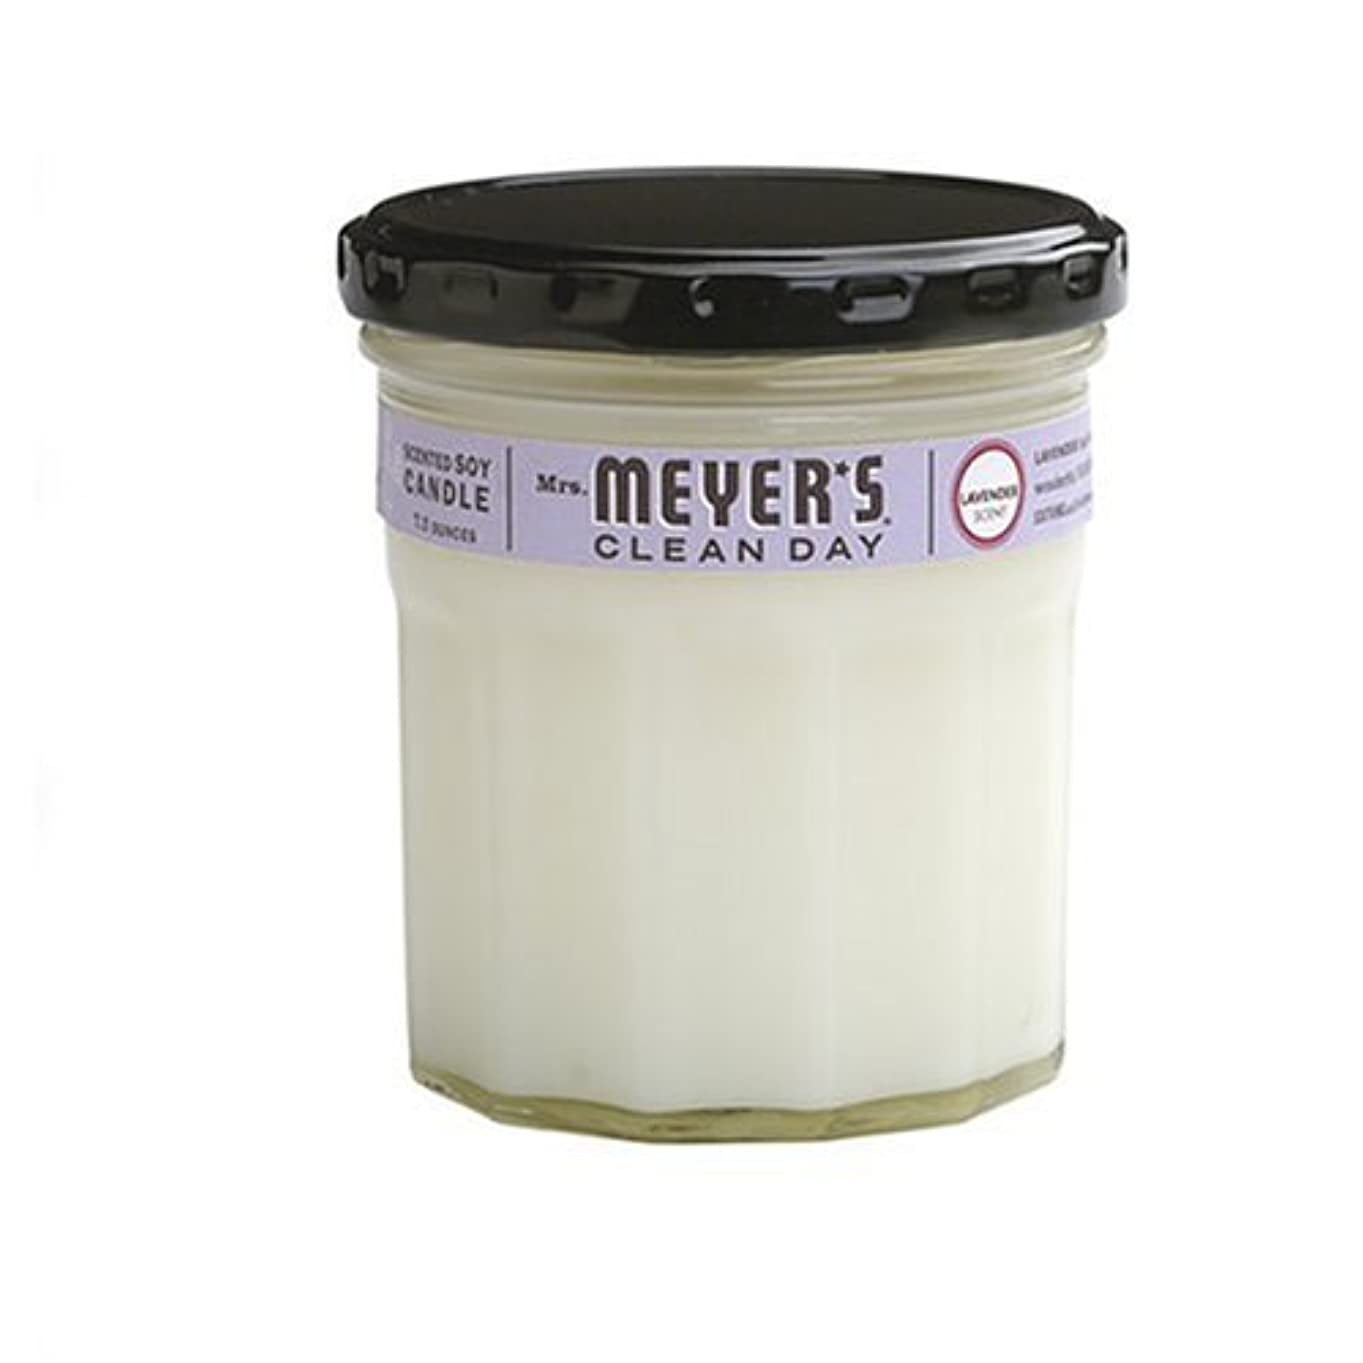 悪意のあるローブ大洪水Mrs. Meyer's Clean Day Soy Candle, Lavender, 7.2 Ounce Glass Jar [並行輸入品]